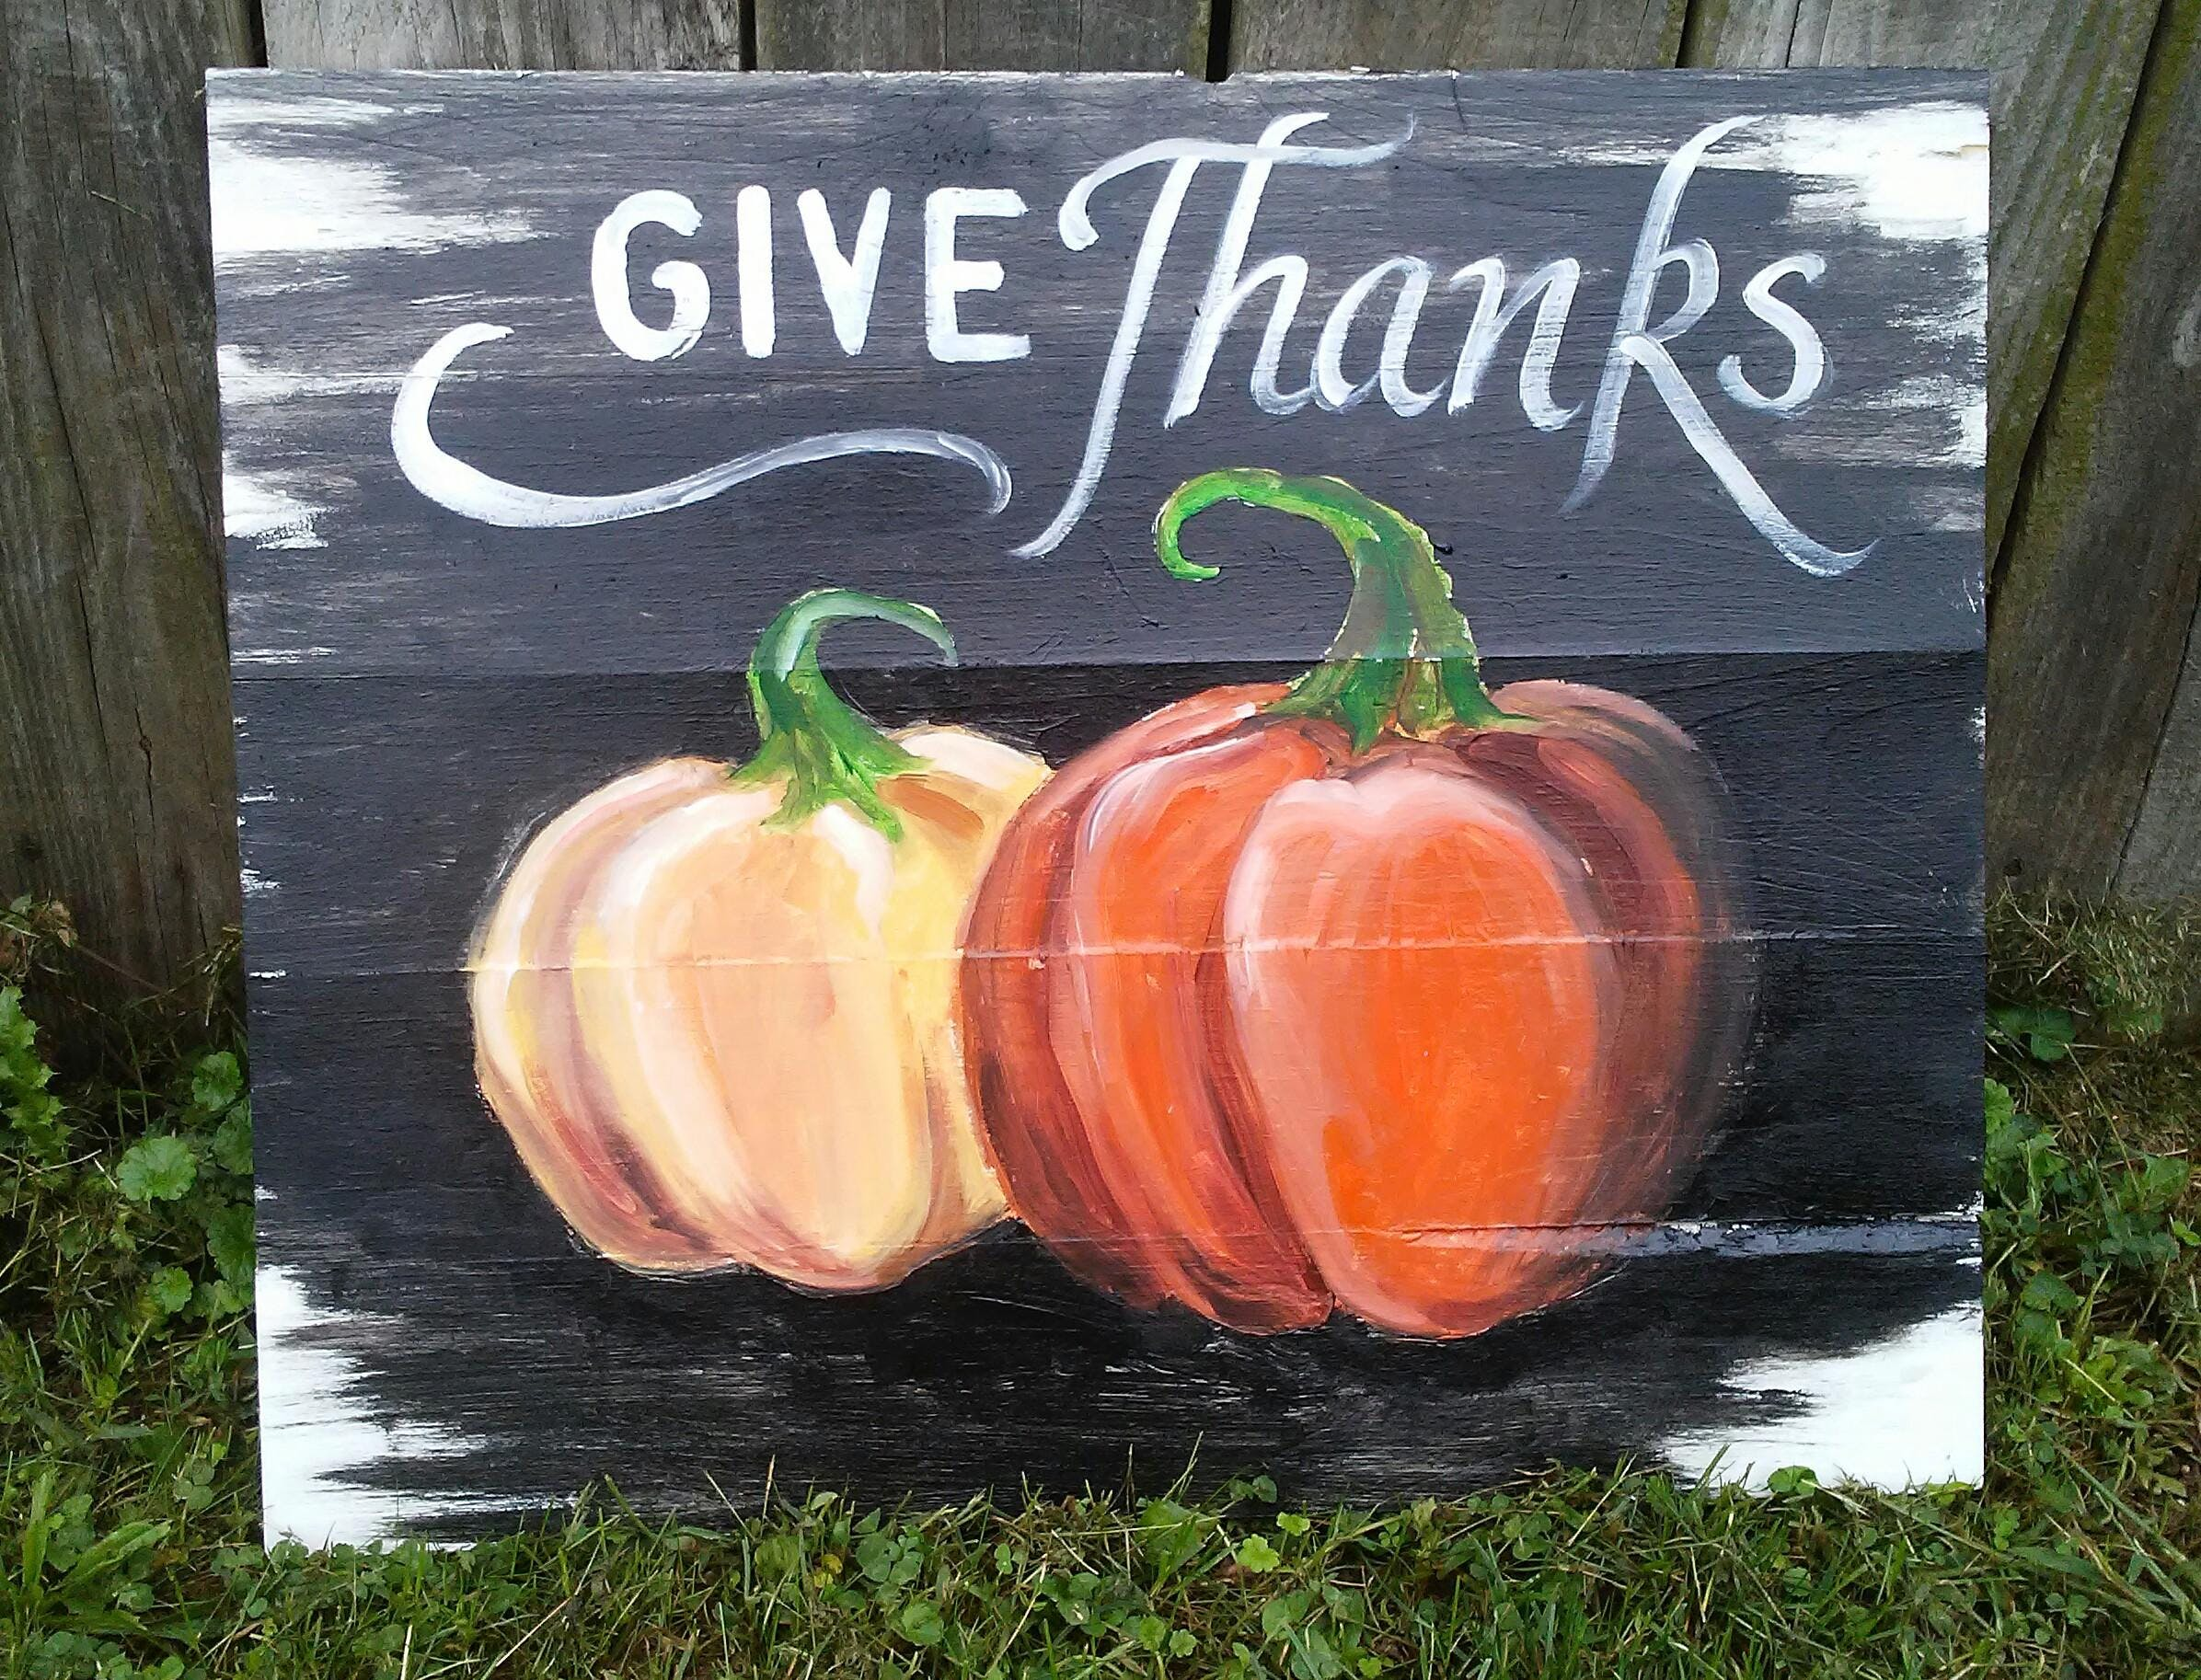 Pallet Sign Party: Giving Thanks, Toledo OH - Nov 15, 2018 ...